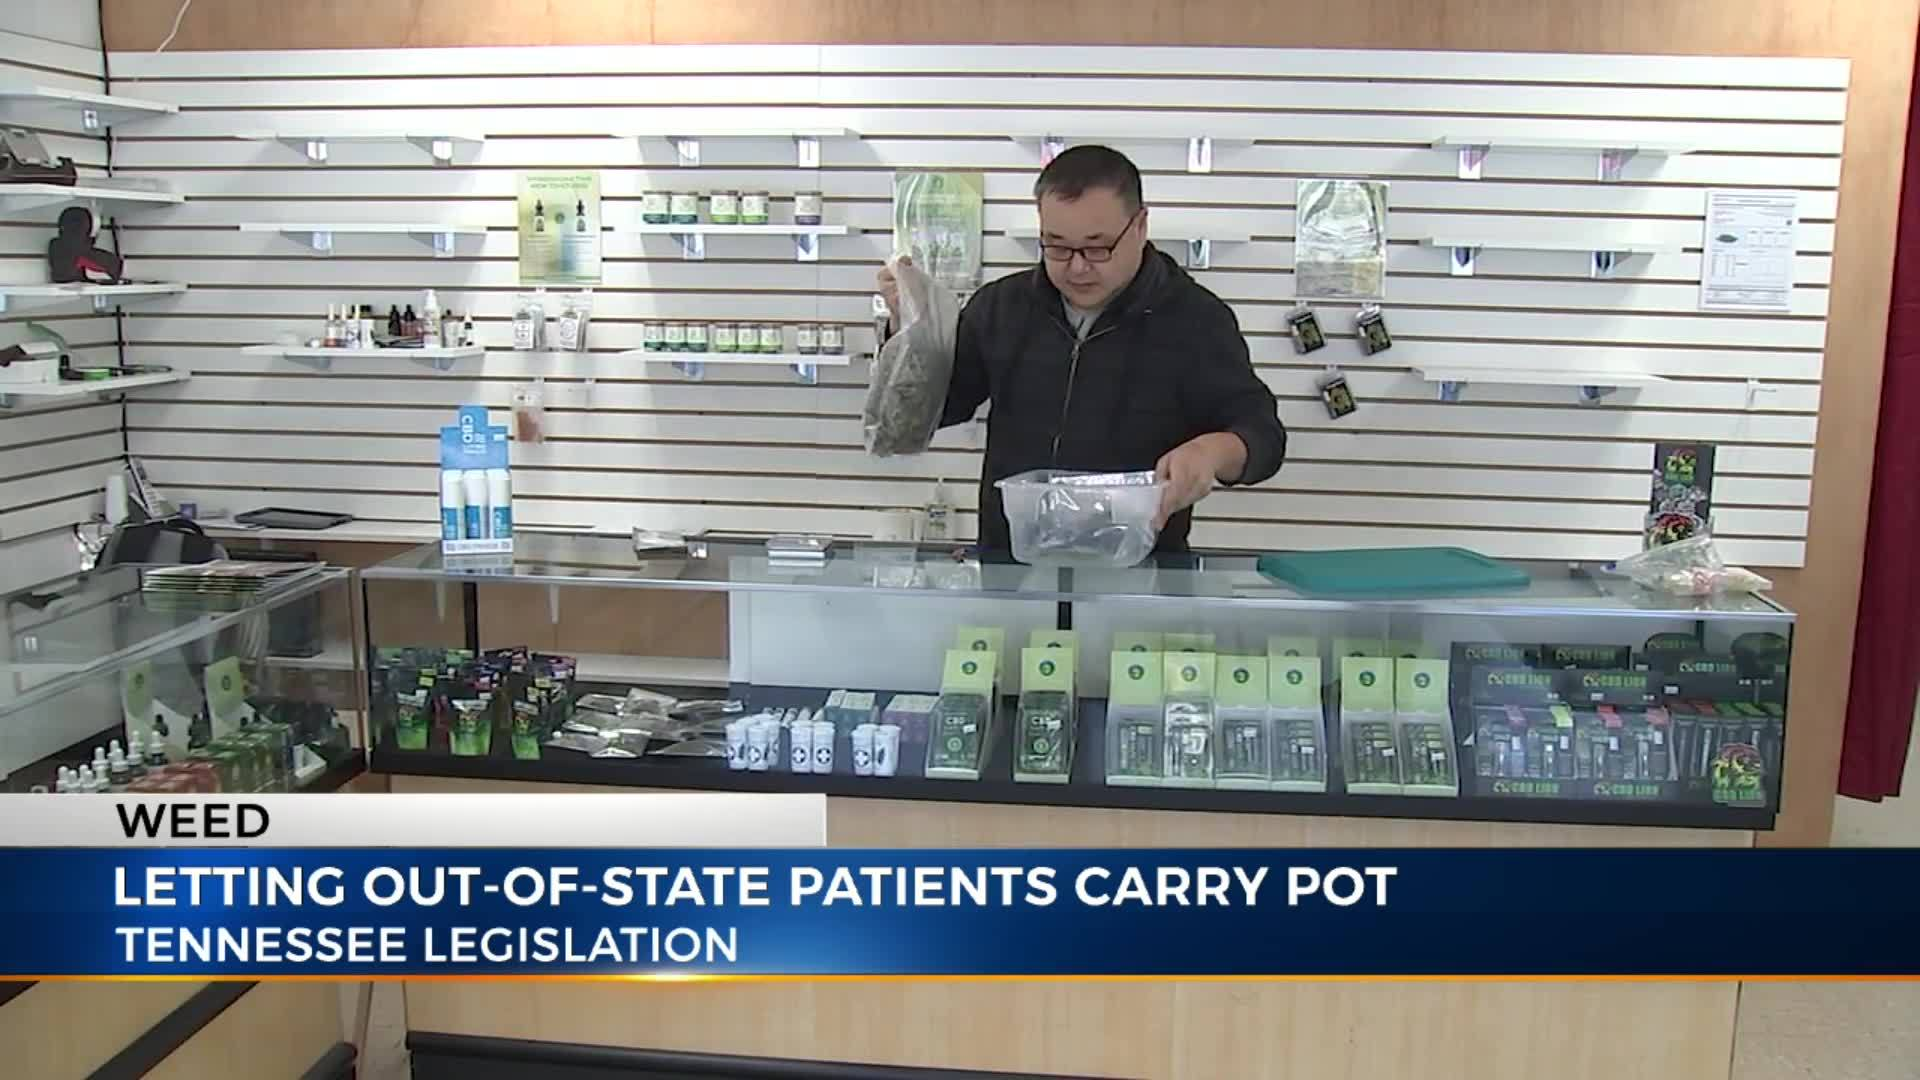 Medical_marijuana_could_soon_be_legal_to_8_20190201001320